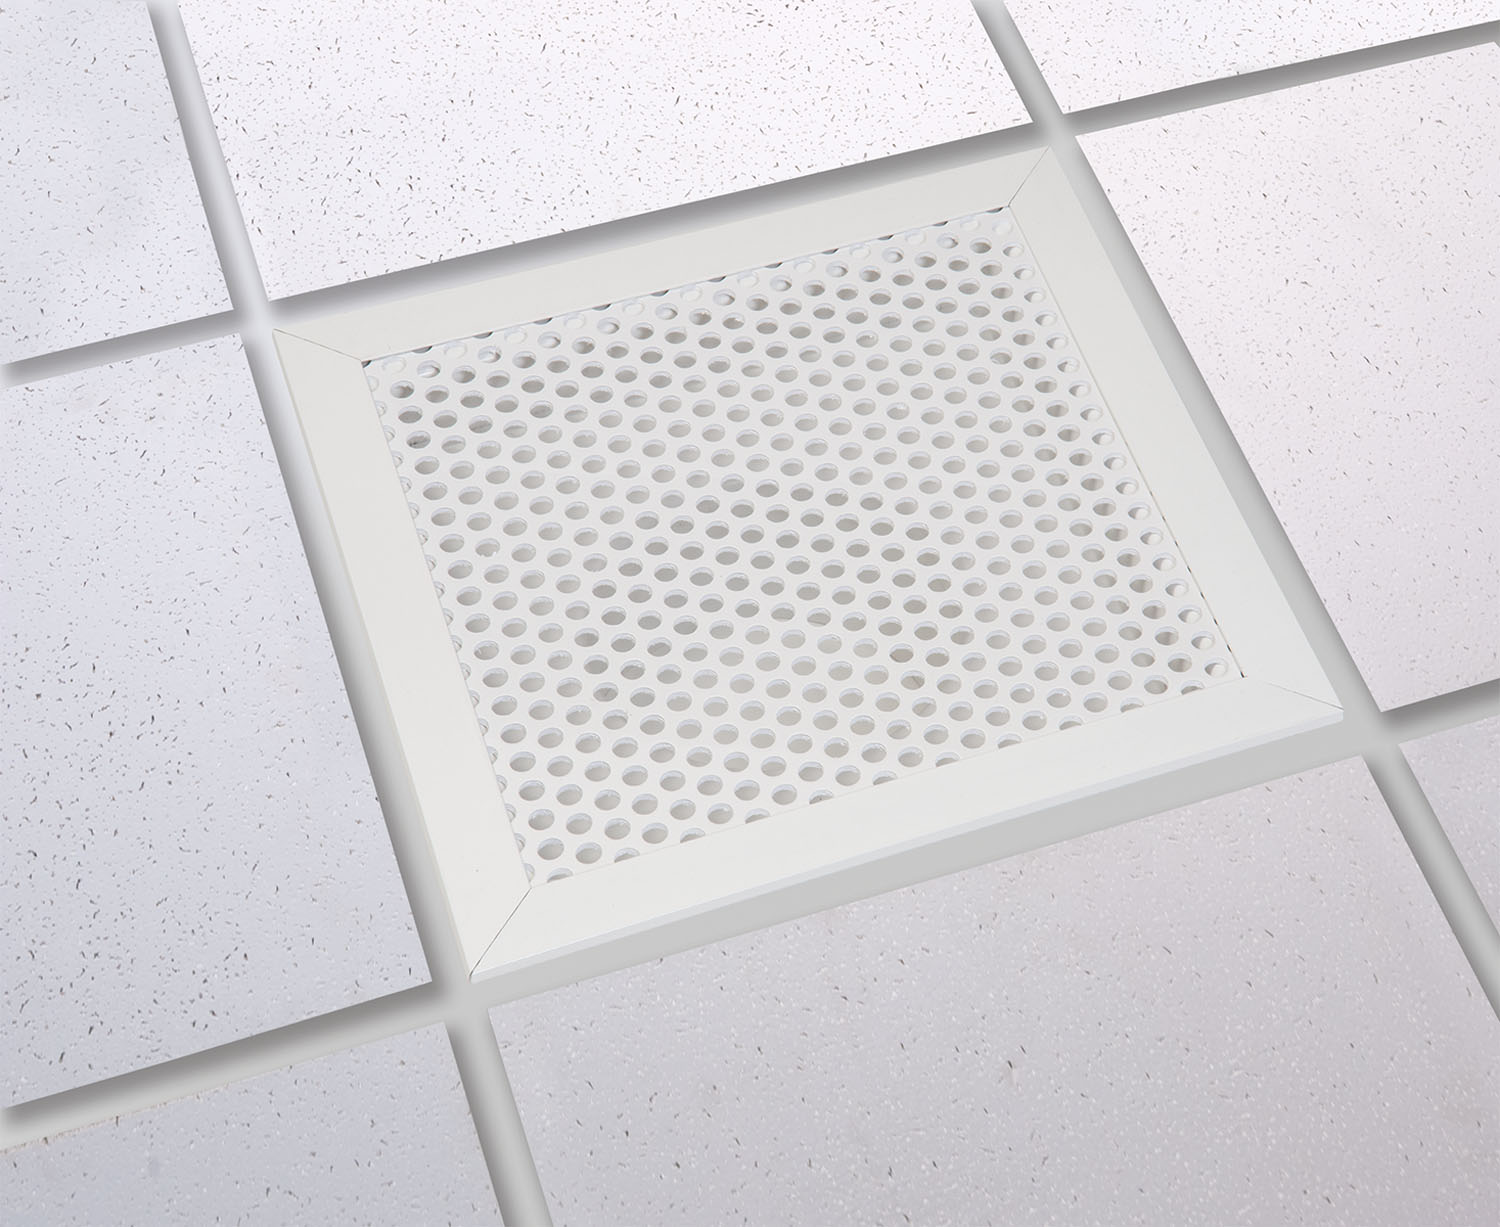 Charming 1 X 1 Ceiling Tiles Huge 12X12 Ceiling Tiles Home Depot Rectangular 12X24 Ceramic Floor Tile 18 X 18 Ceramic Floor Tile Youthful 1930 Floor Tiles White2 X 8 Glass Subway Tile Drop Ceiling Vents | Ceiling Ease